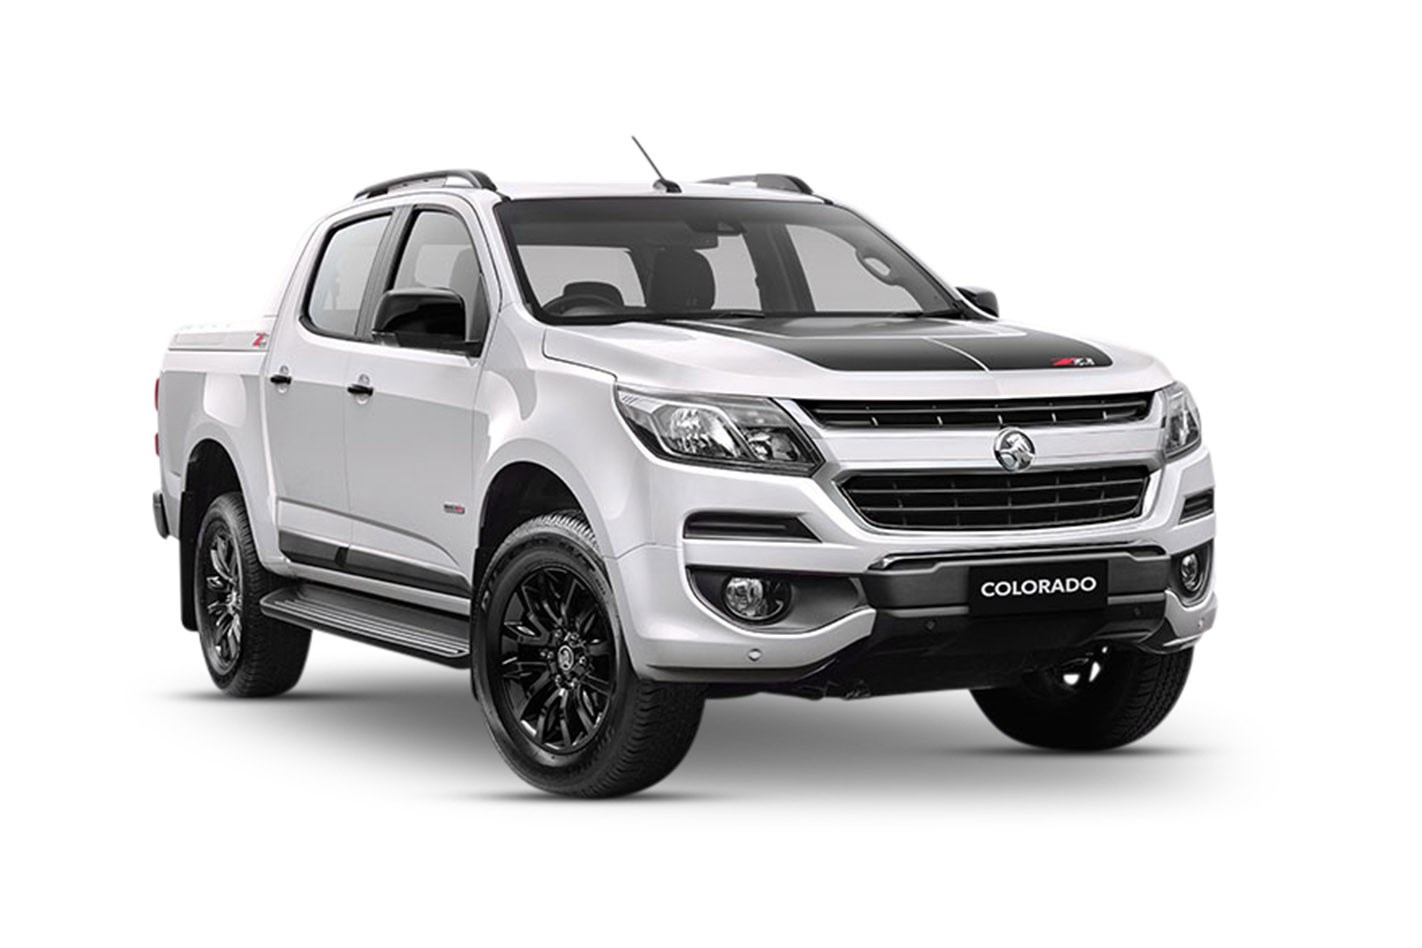 2017 Holden Colorado Z71 (4x4), 2.8L 4cyl Diesel Turbocharged Manual, Ute